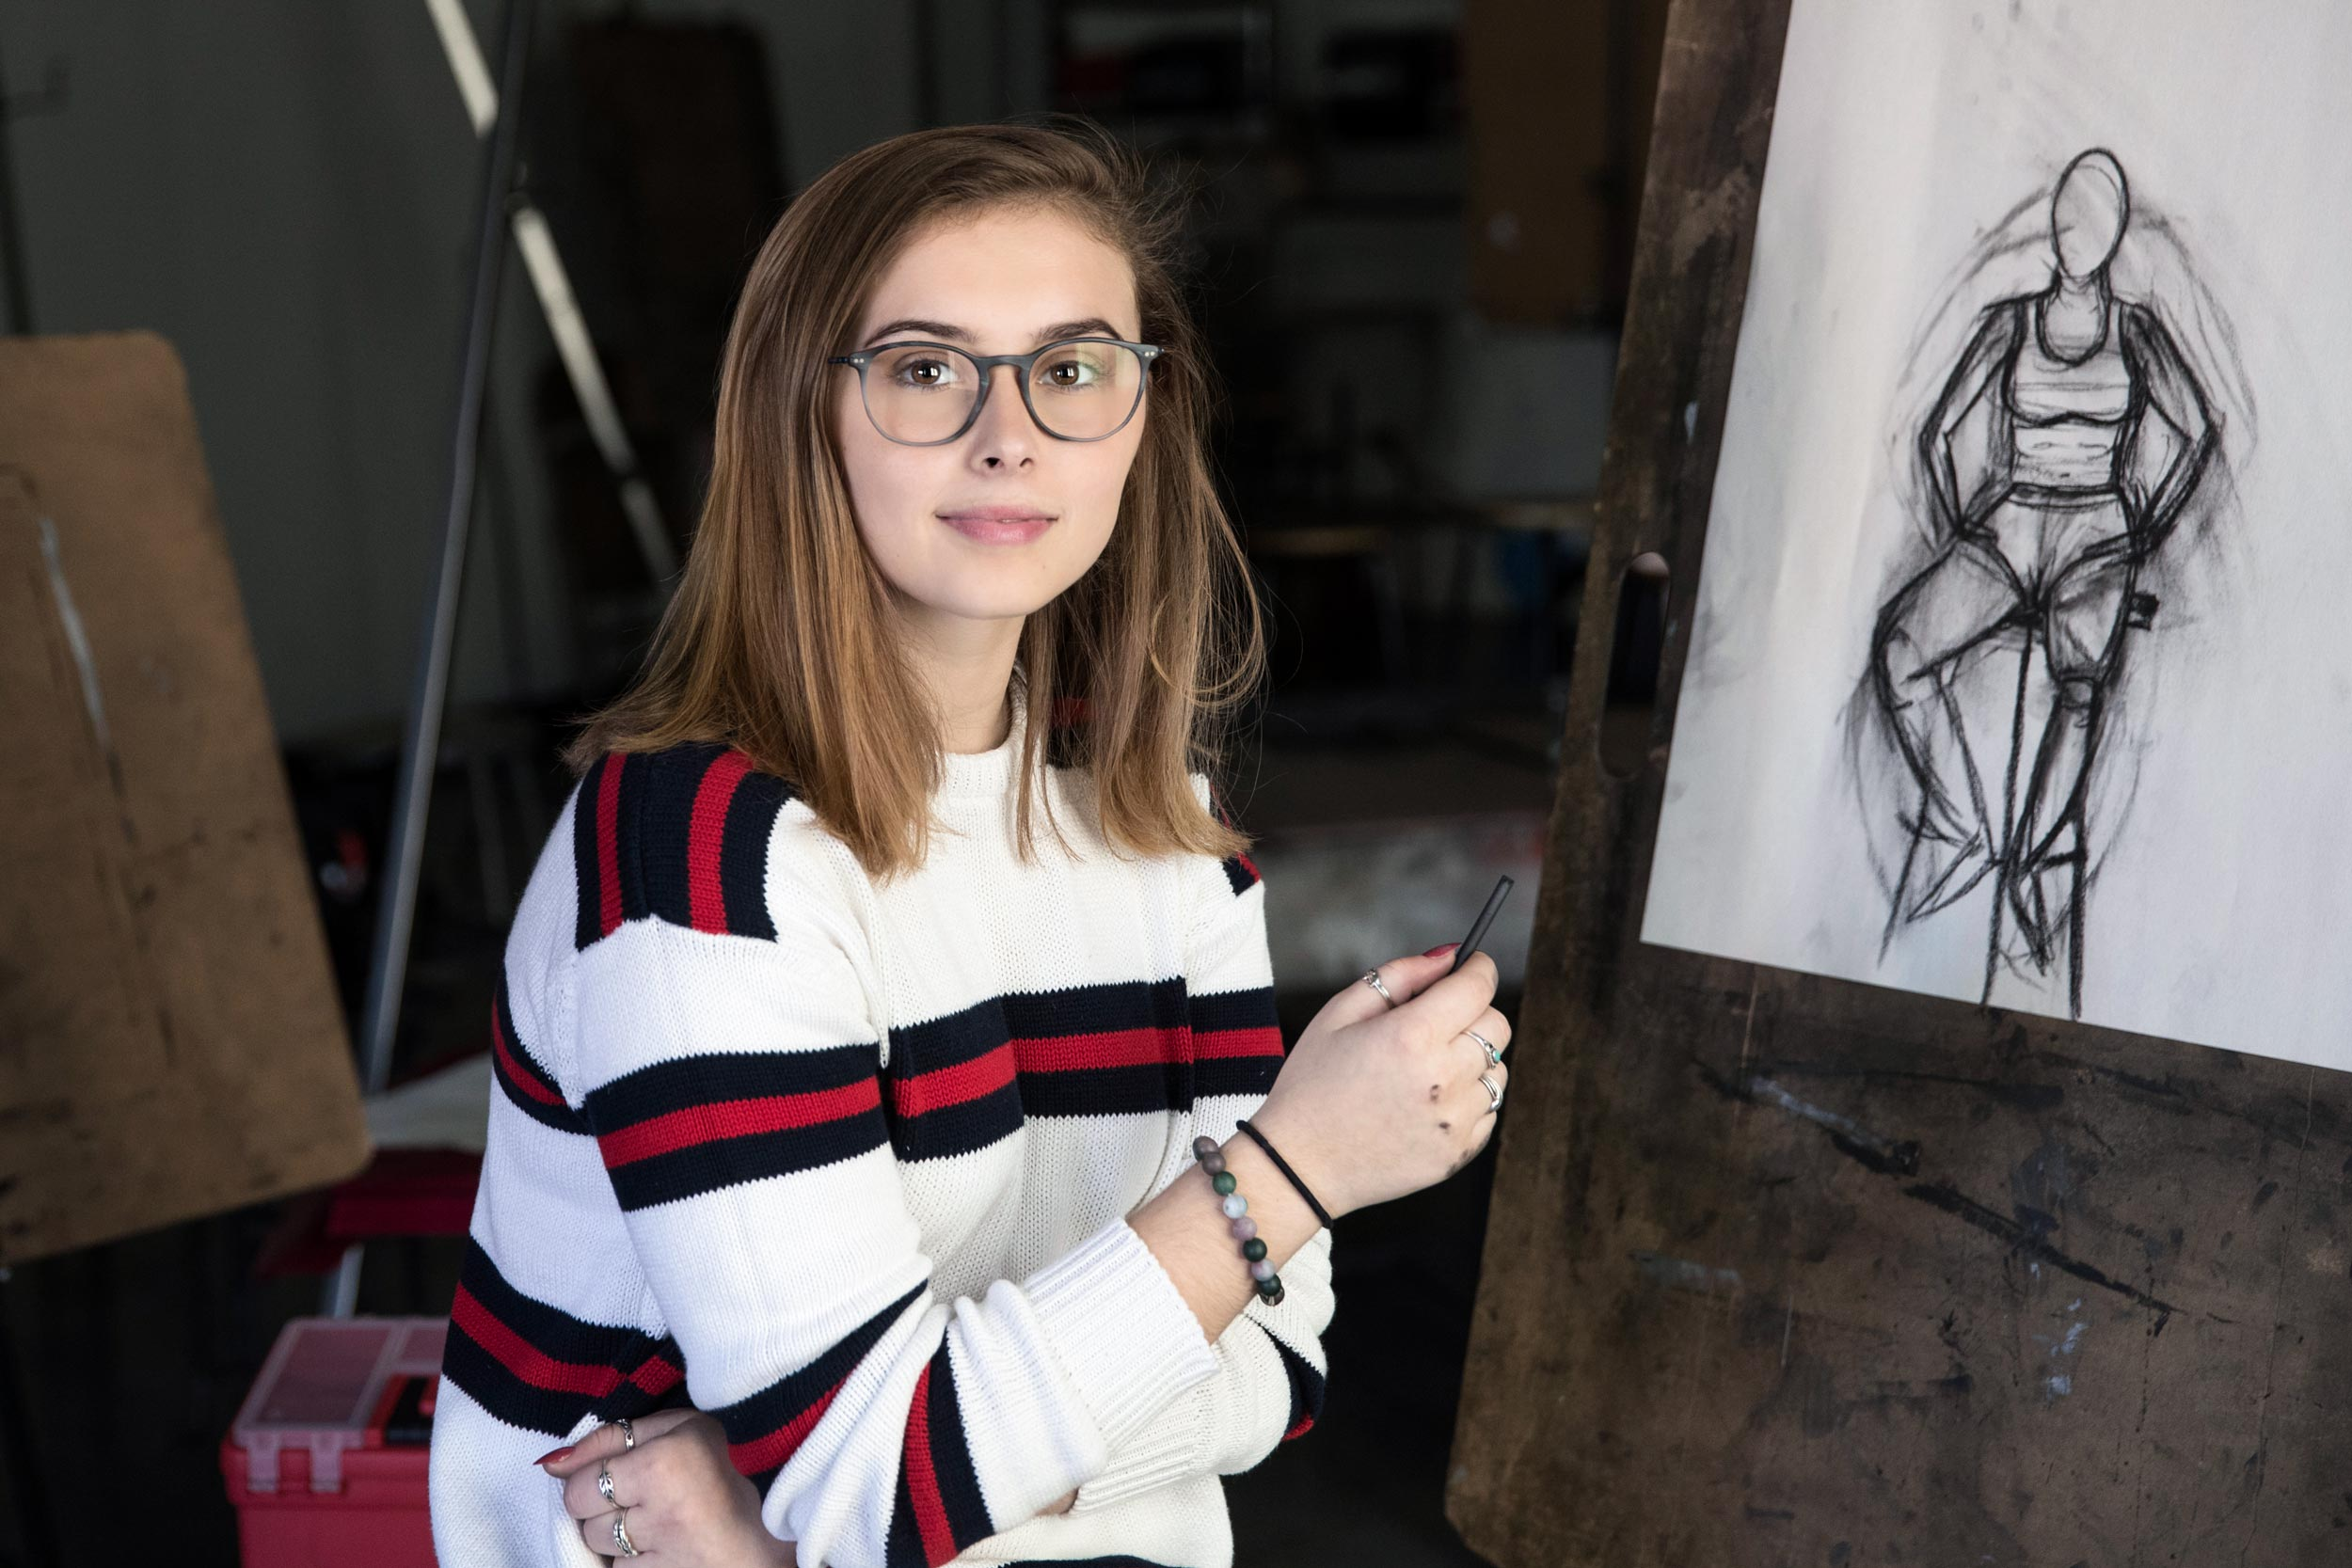 First-year student Emma Hitchcock started Art for the Heart with her high school friend, Zadie Lacy, last year.